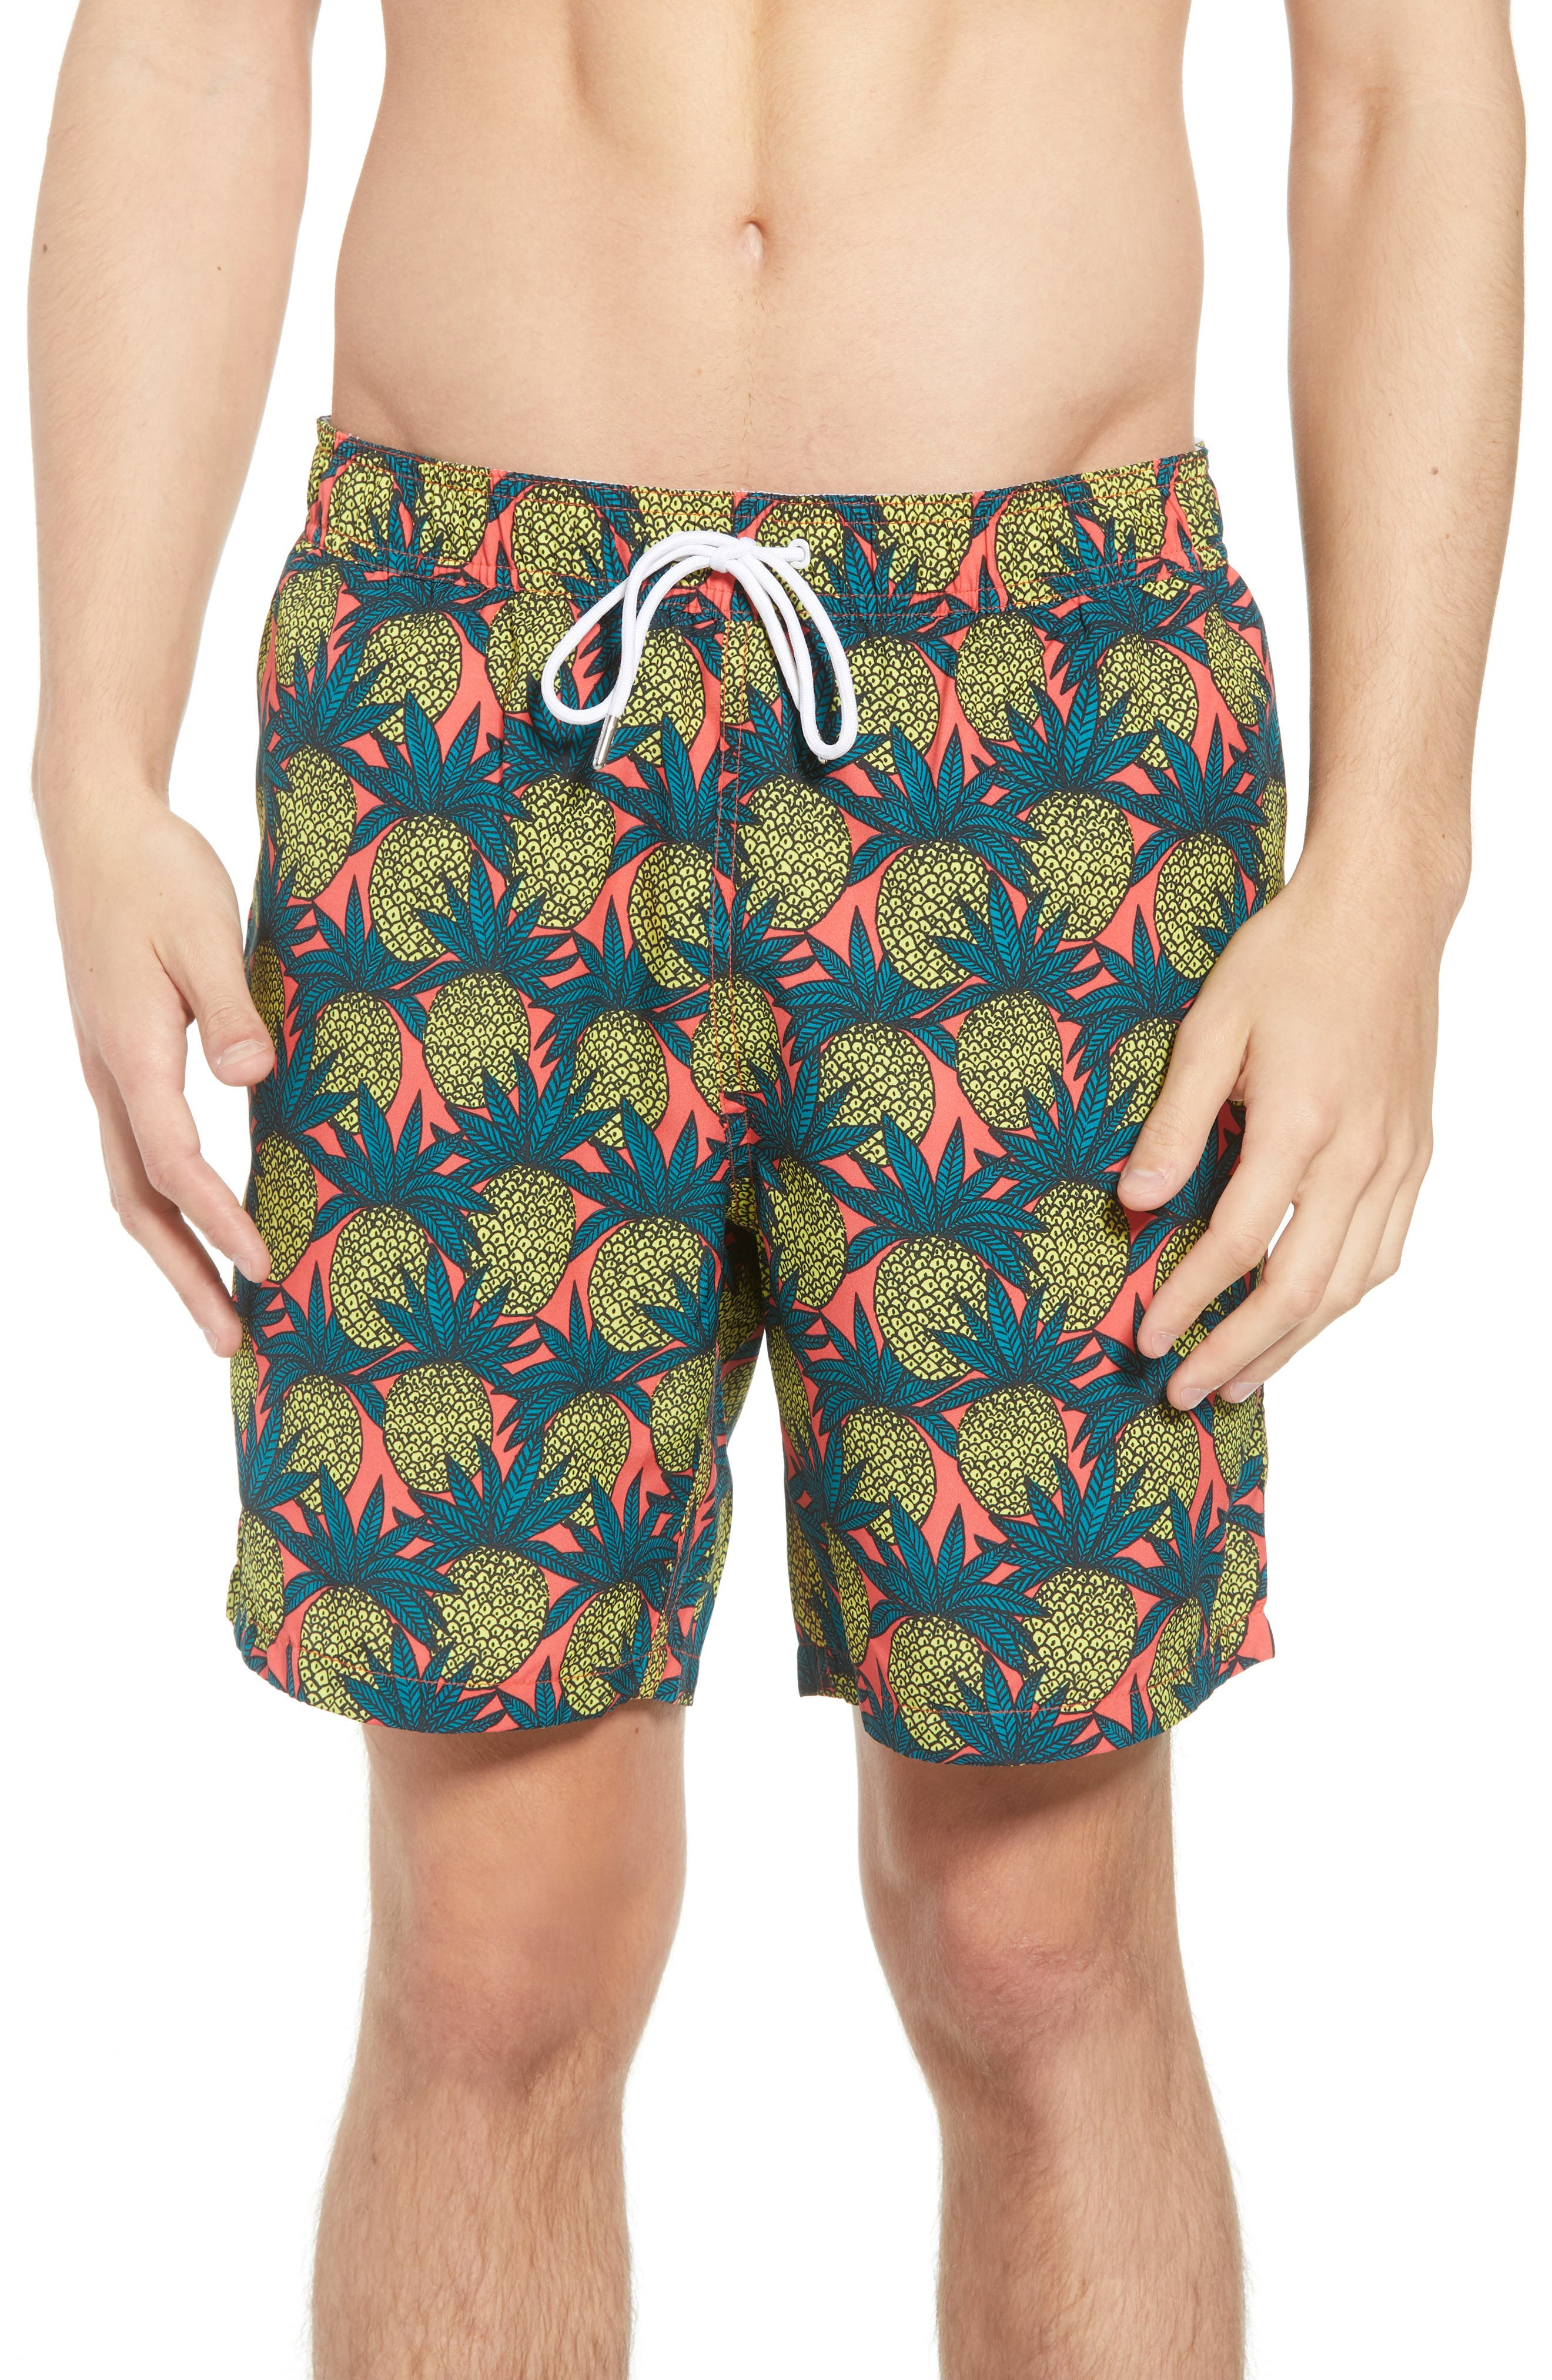 Banzai 7-Inch Swim Trunks,                         Main,                         color, Pineapple Fields